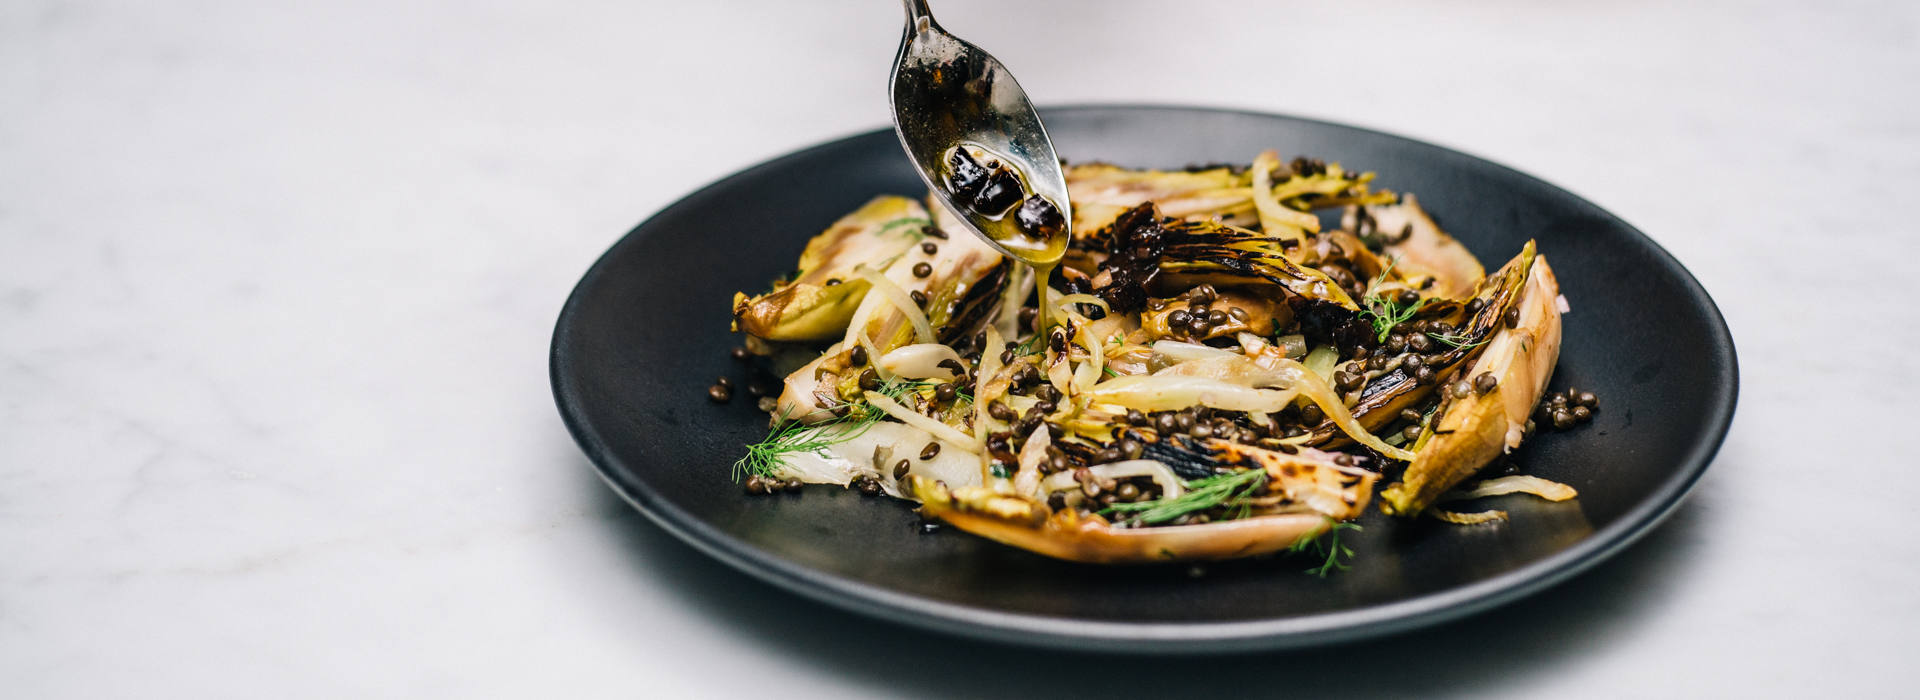 <p>Charred endive and fennel take on a deeper, sweeter flavor in this salad mixed with lentils and diced prunes and seasoned with a shallot vinaigrette. </p>